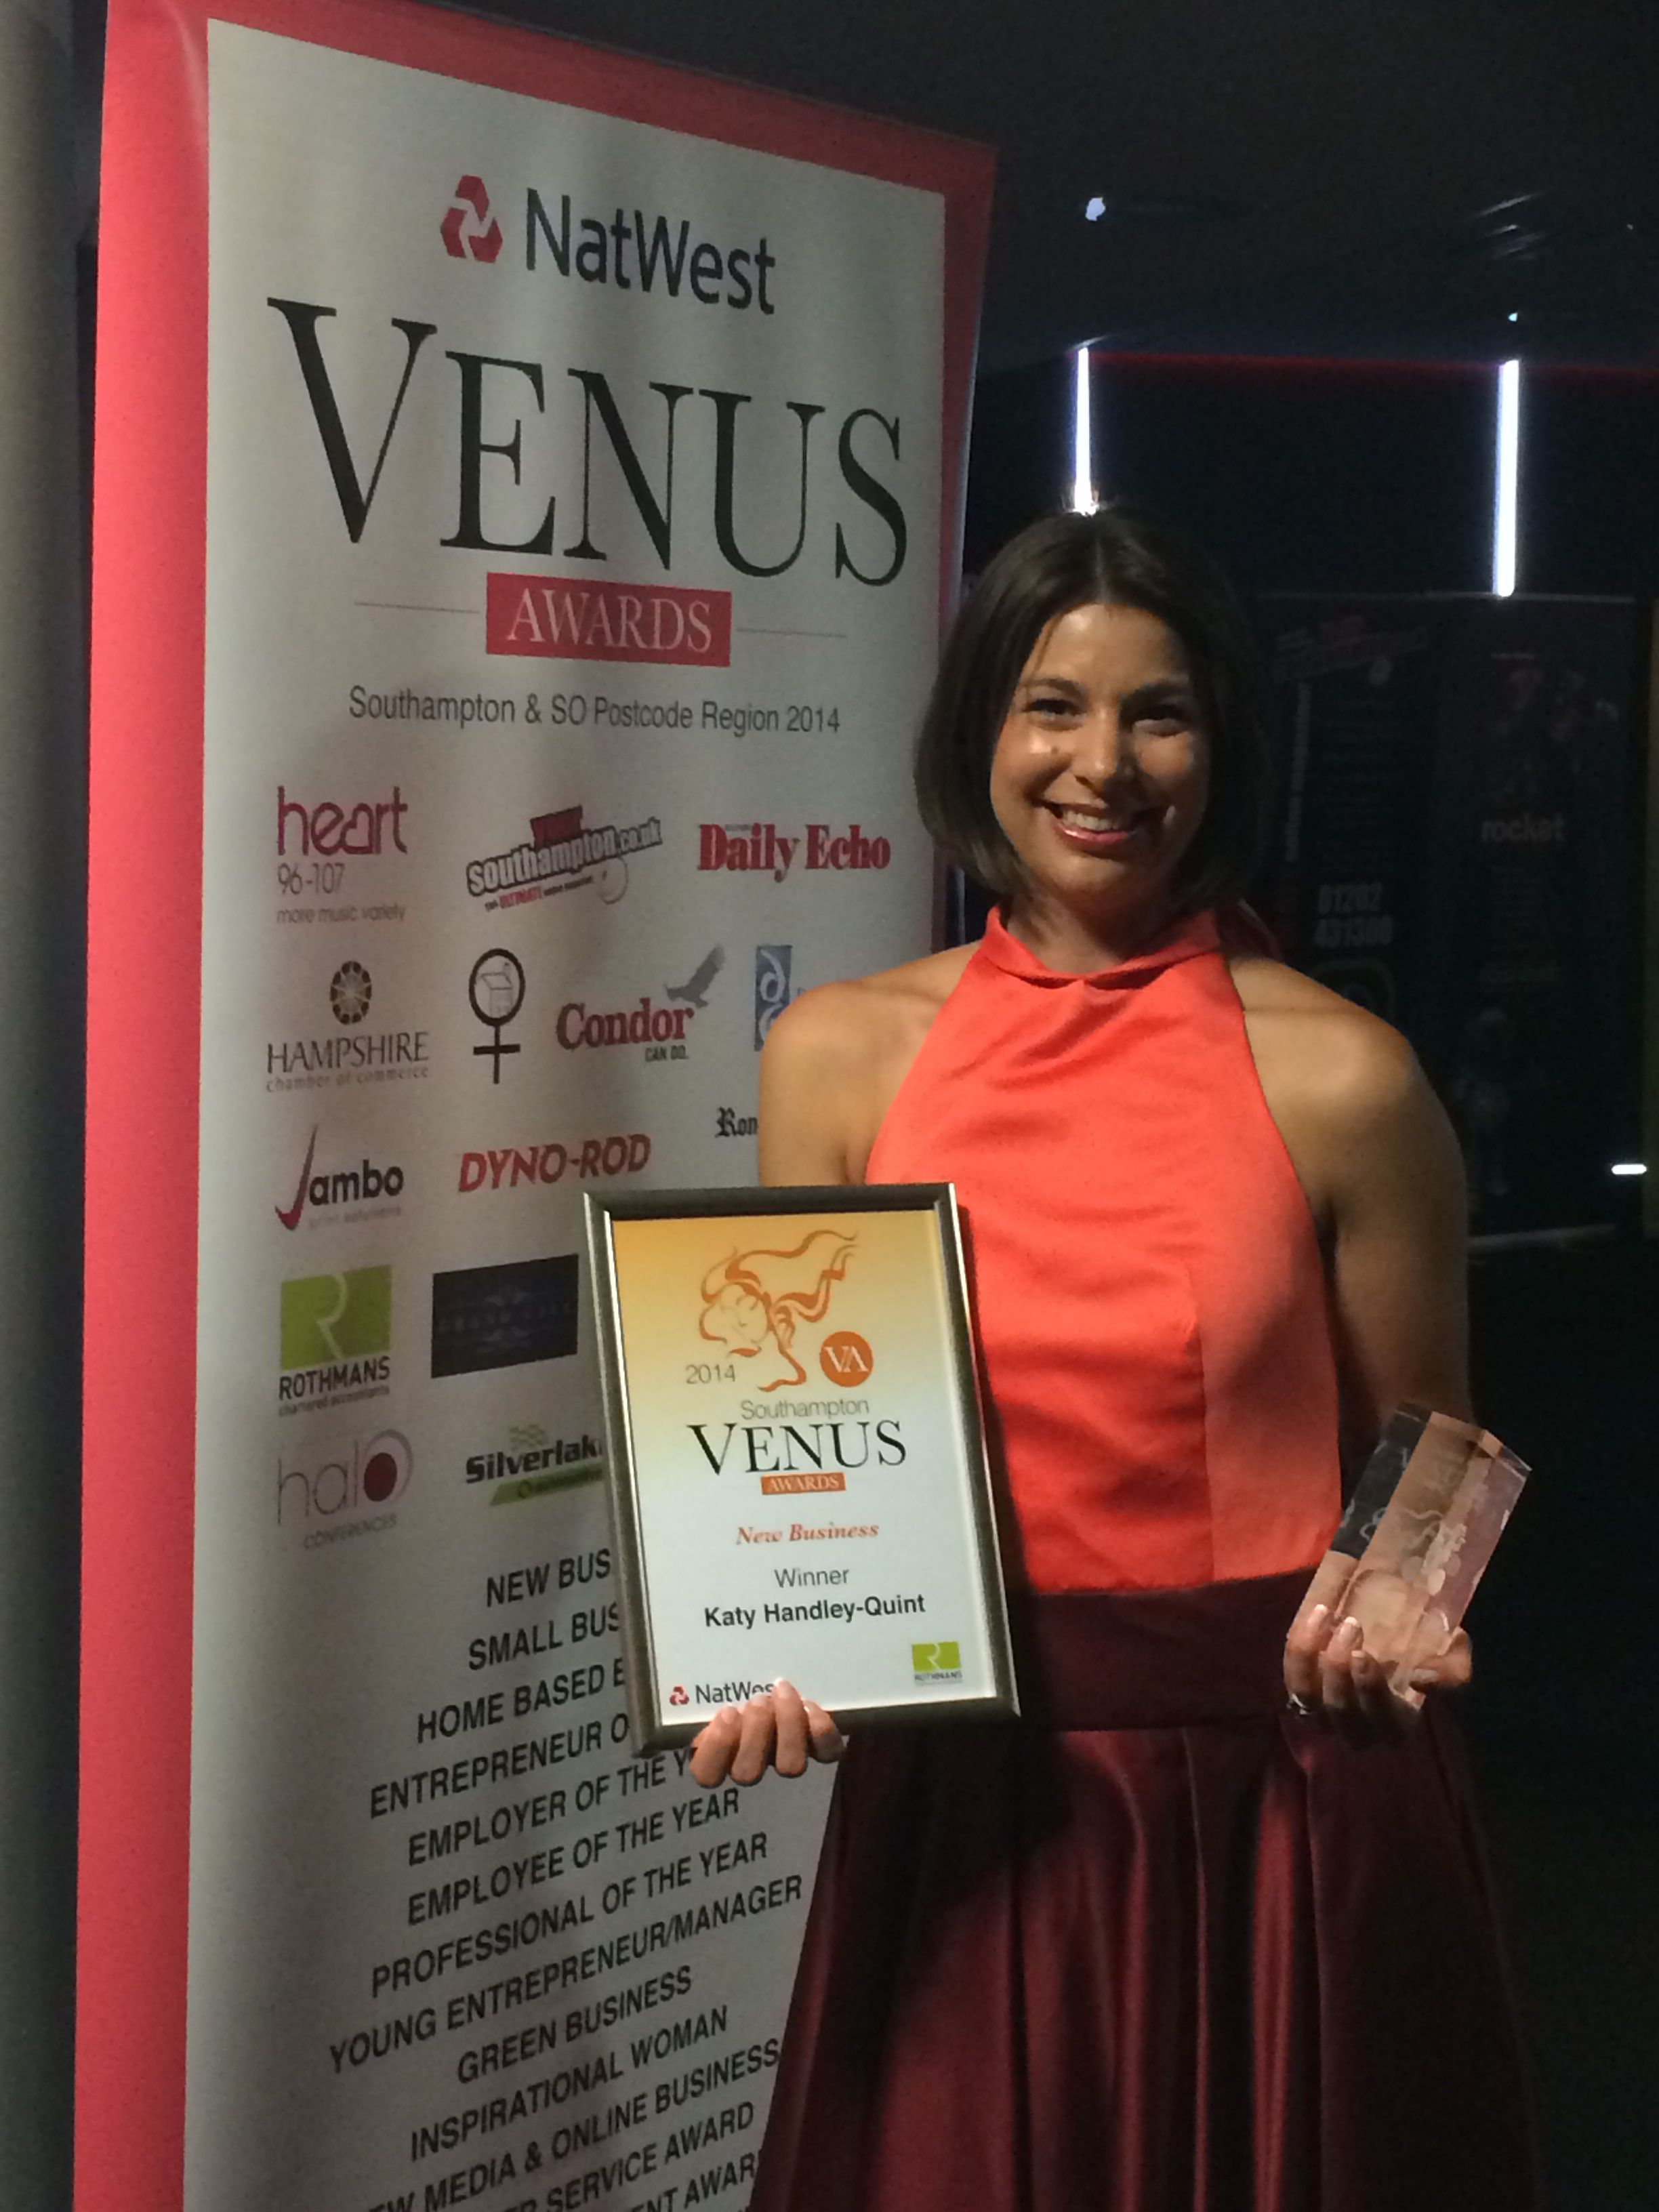 Venus Awards Rothmans LLP New Business of the Year PINKS Children's Boutique  www.thepinkpartyboxcompany.co.uk SO198HH